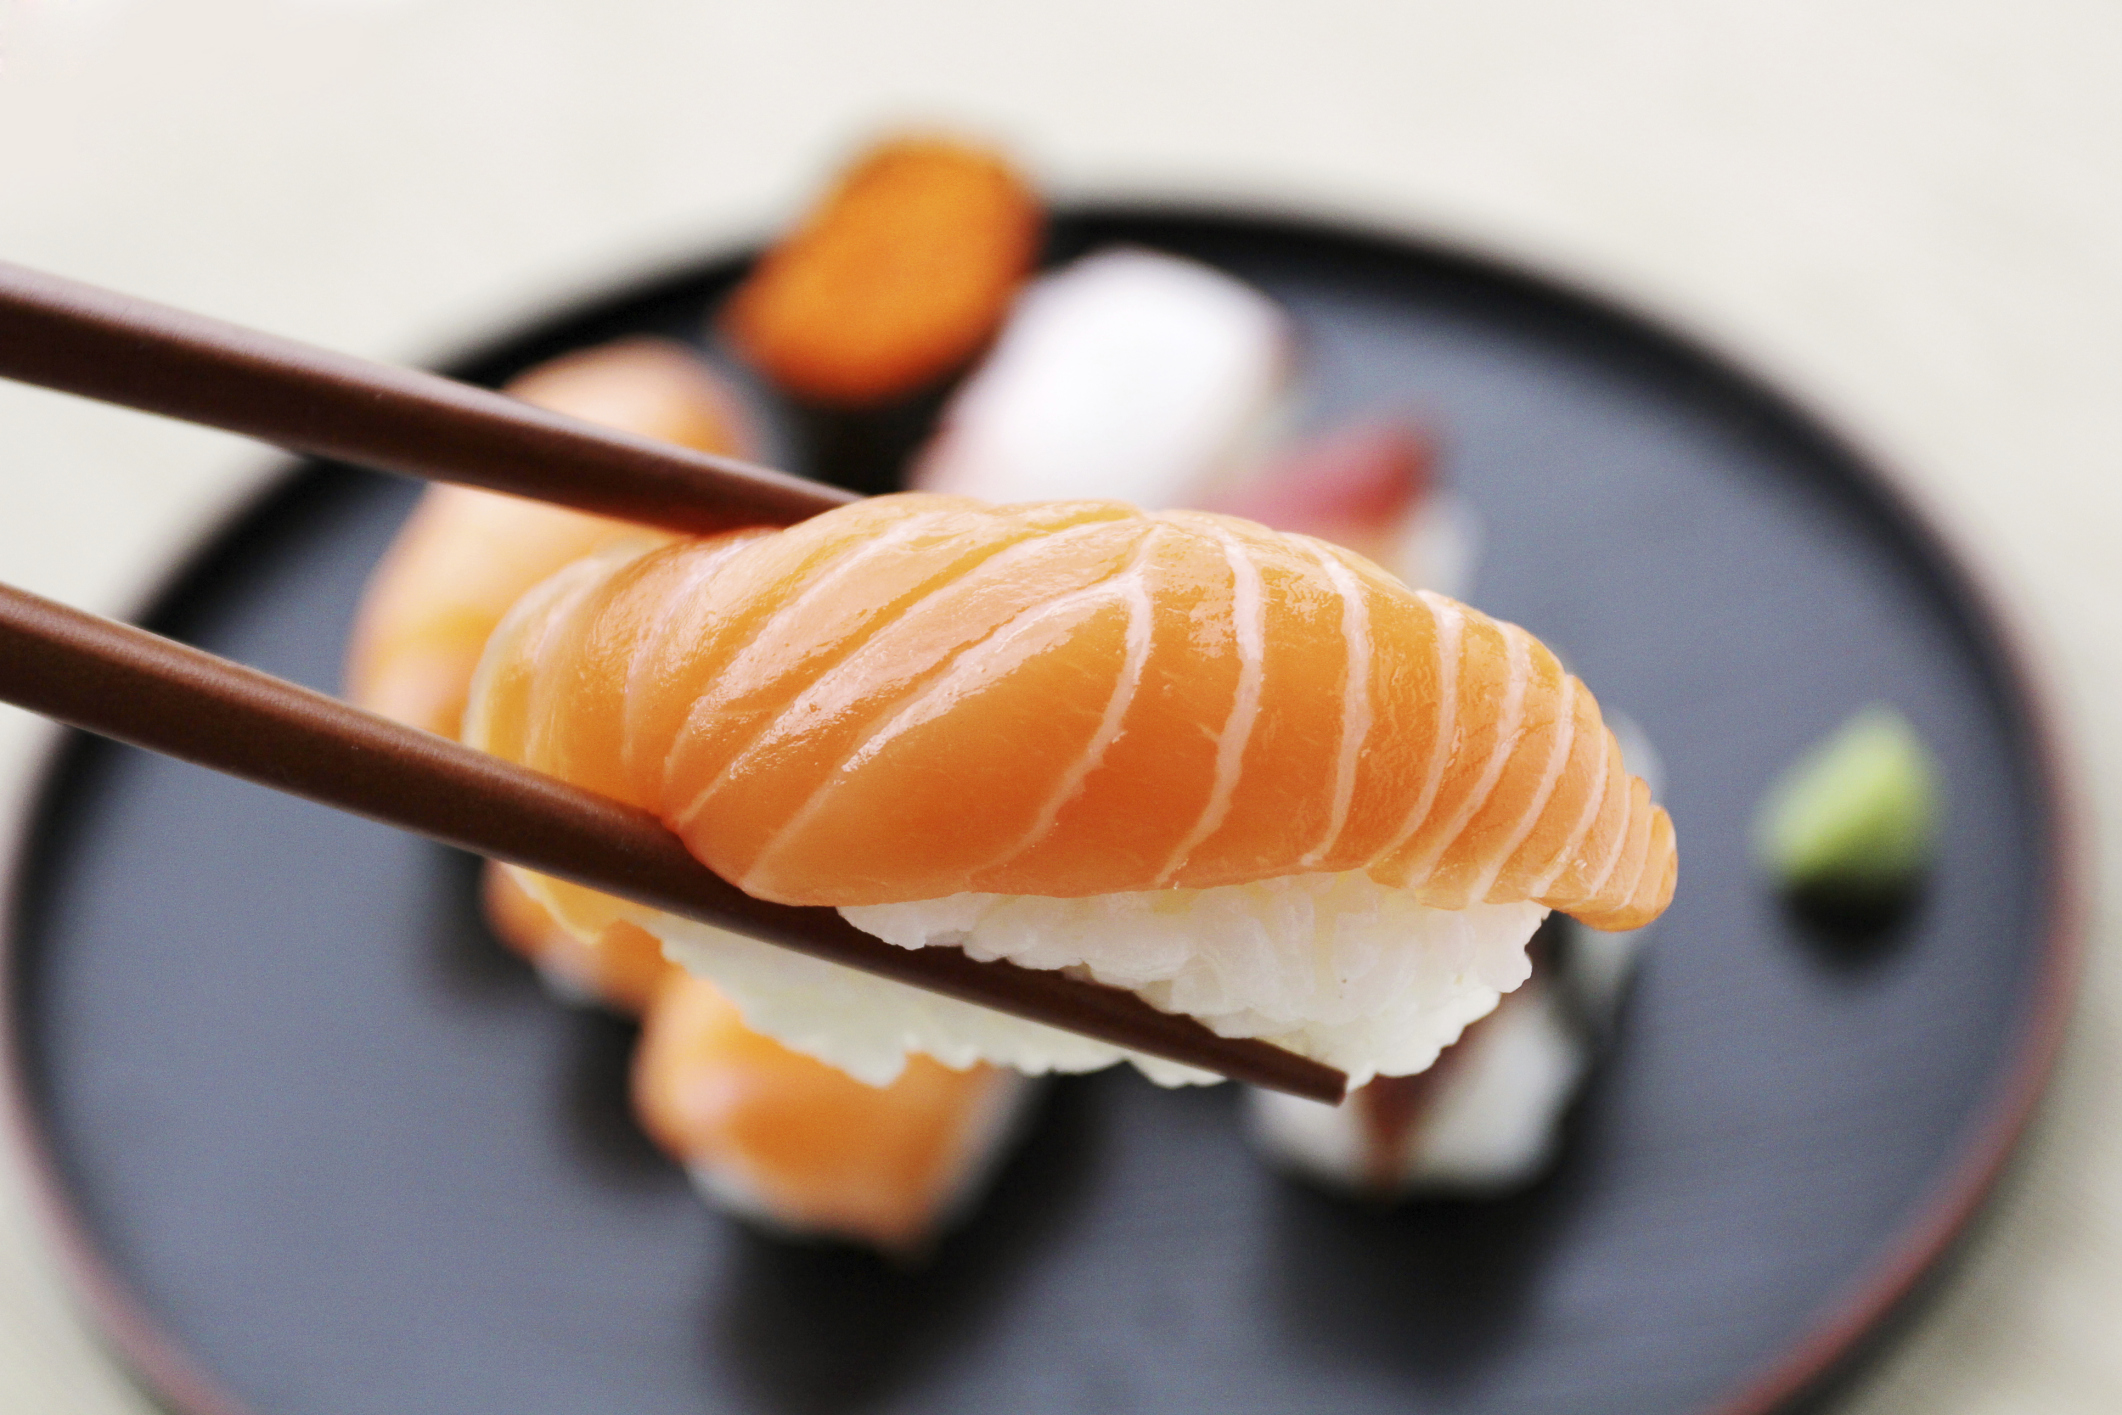 You're eating sushi all wrong: An expert offers etiquette tips